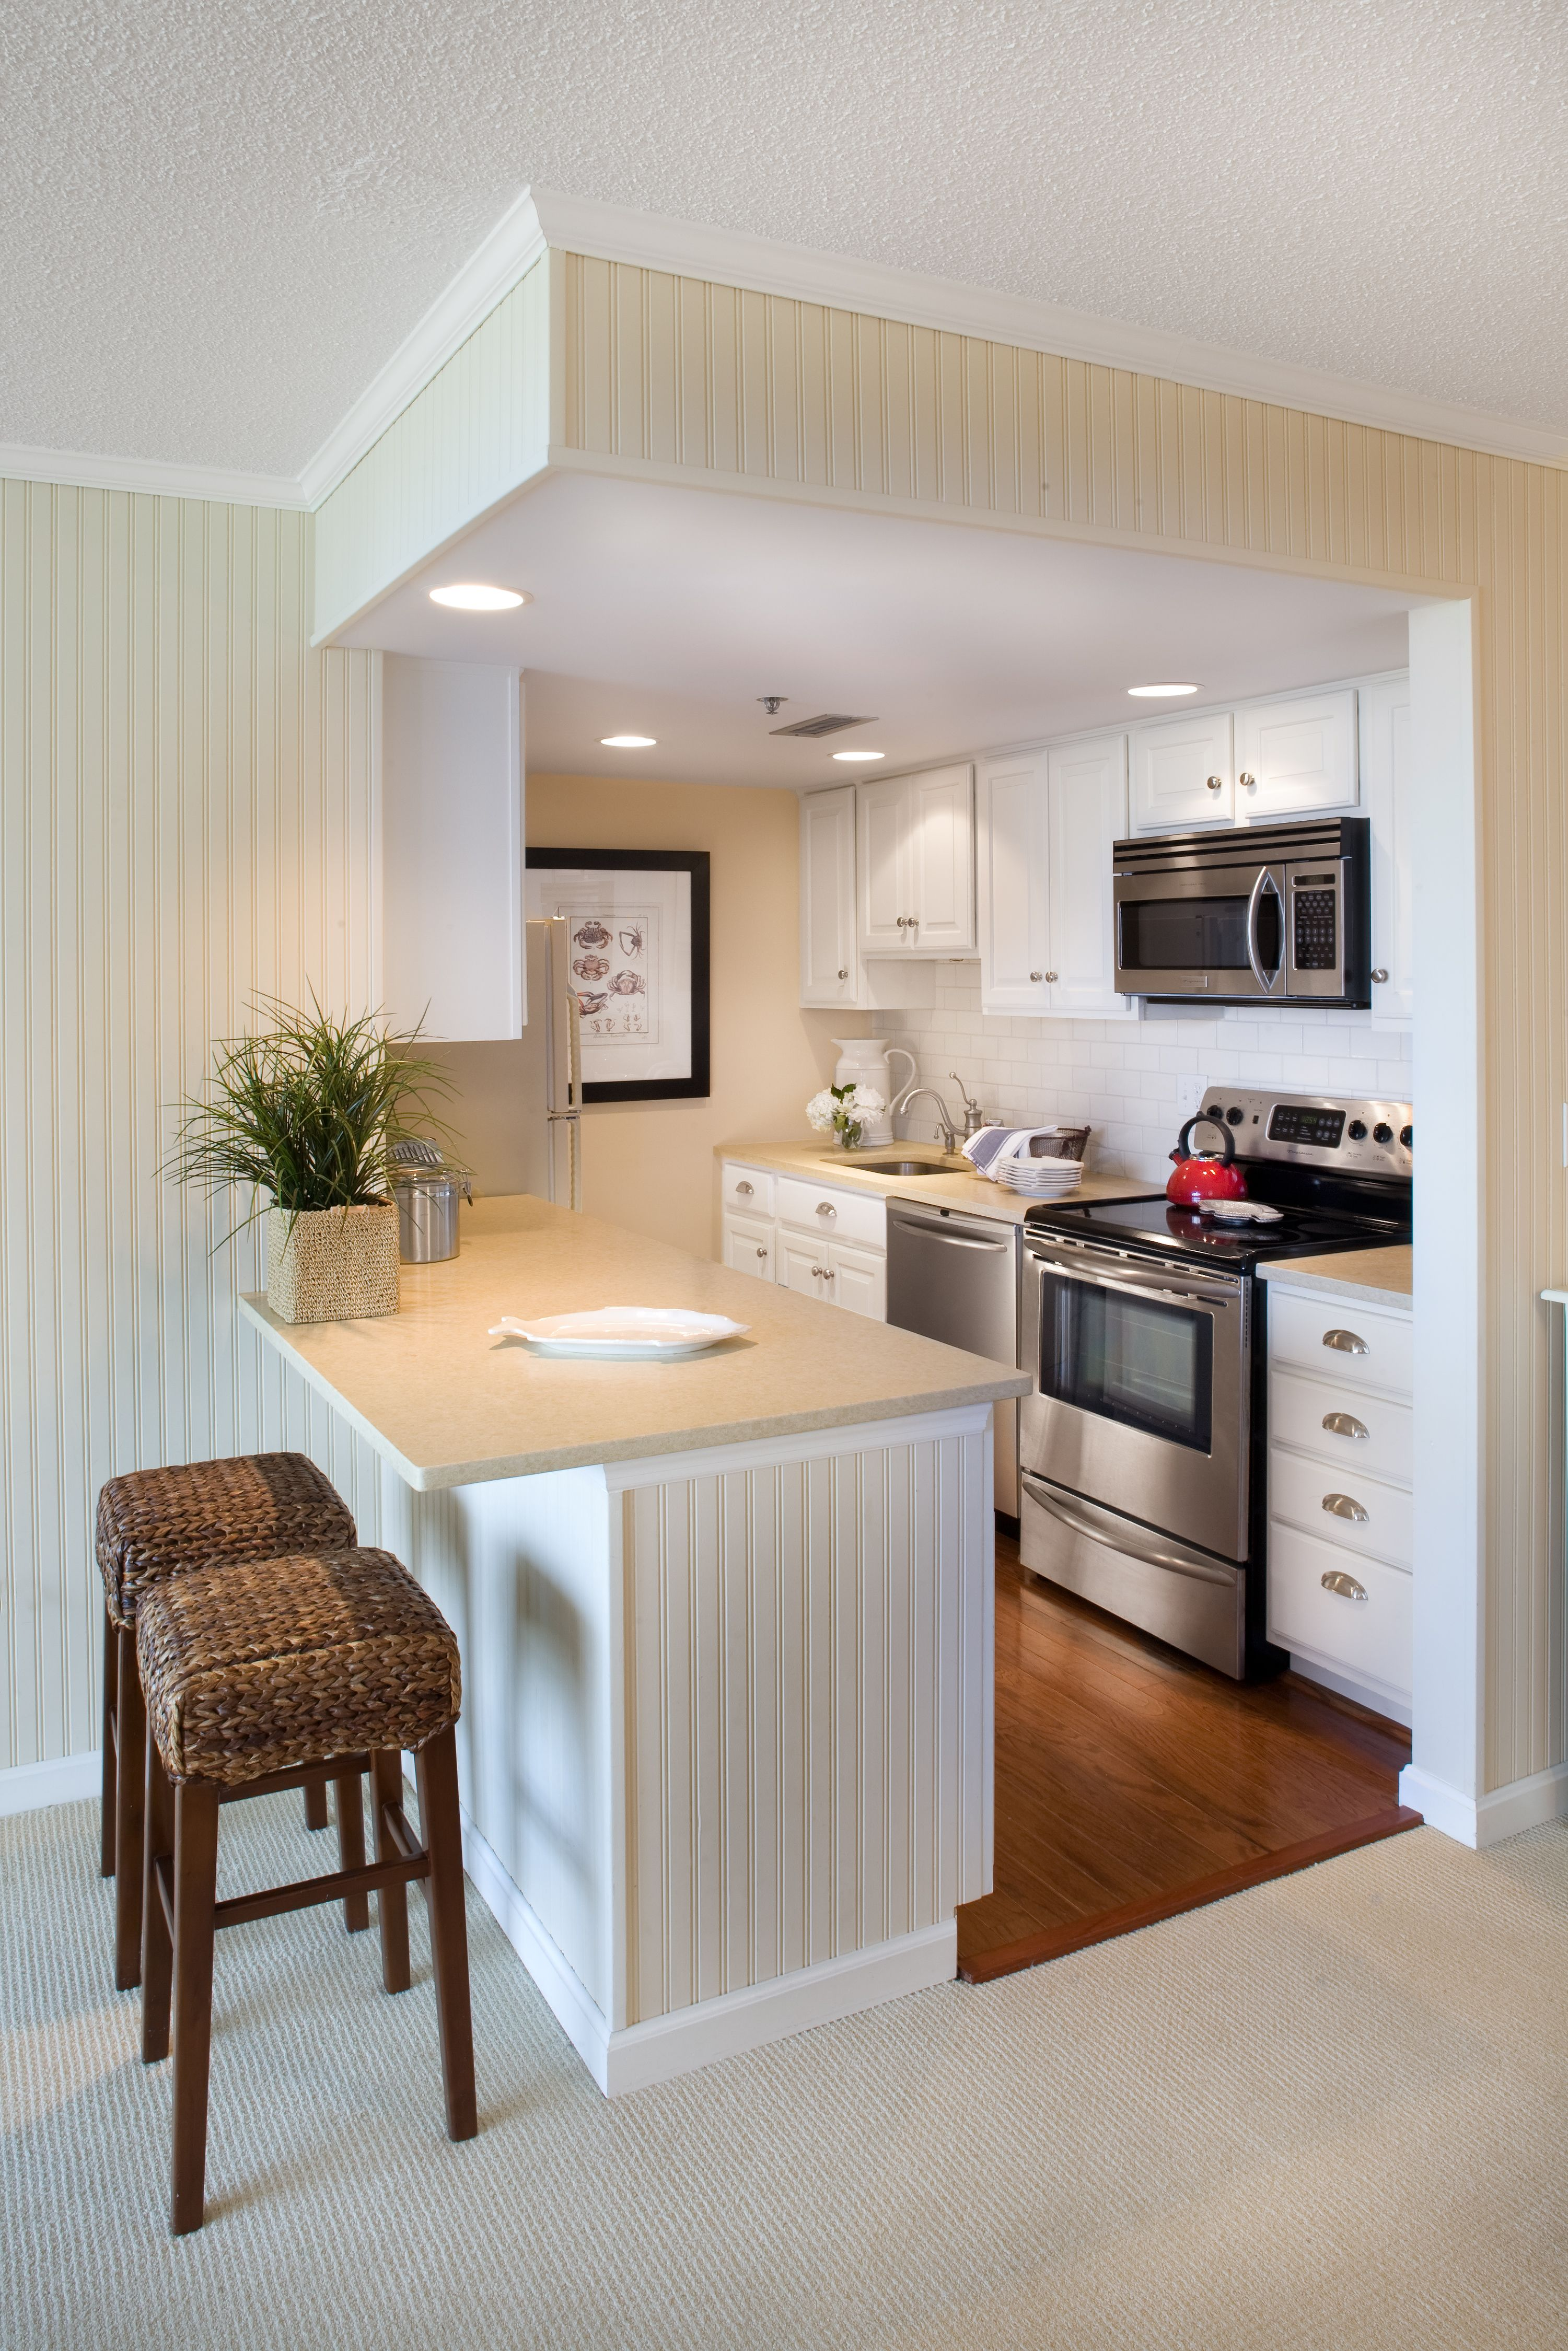 How to plan a perfect kitchen layout  Kitchen in 2019